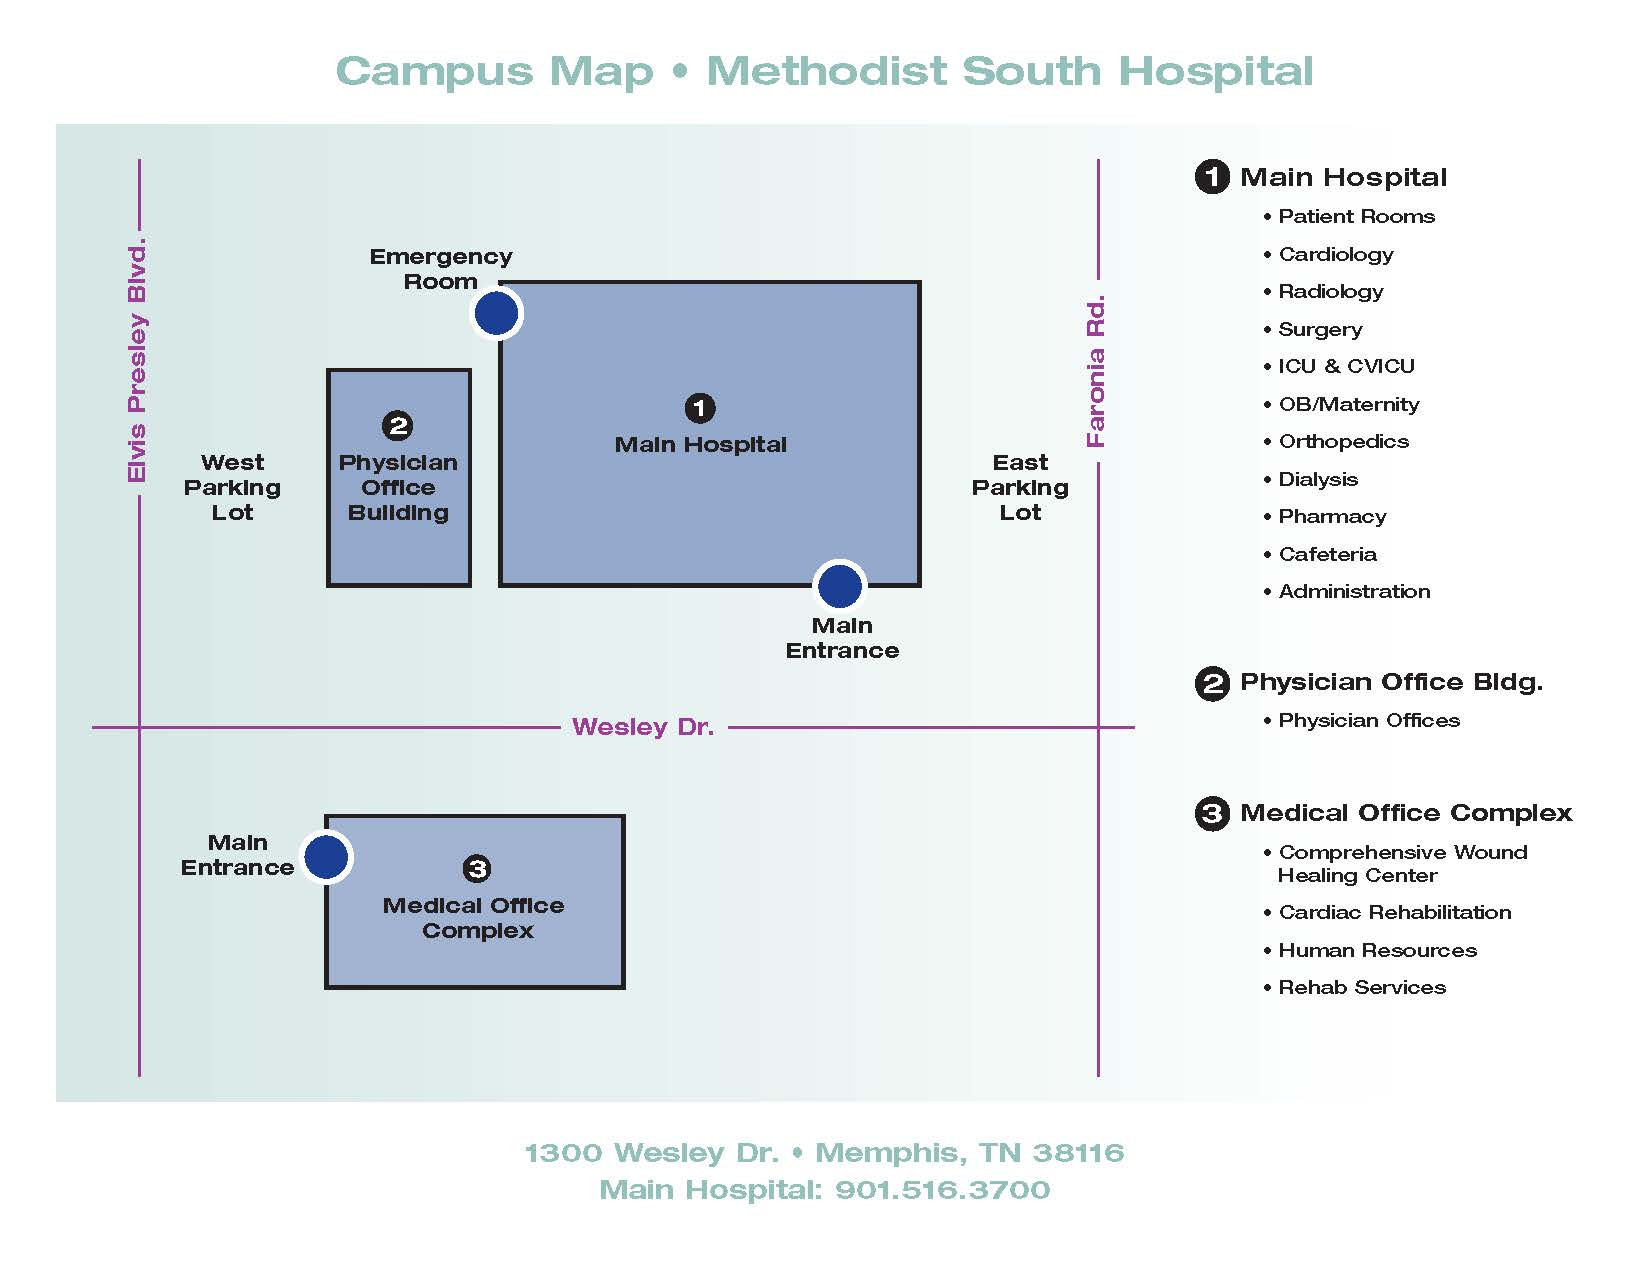 Campus map of Methodist South Hospital